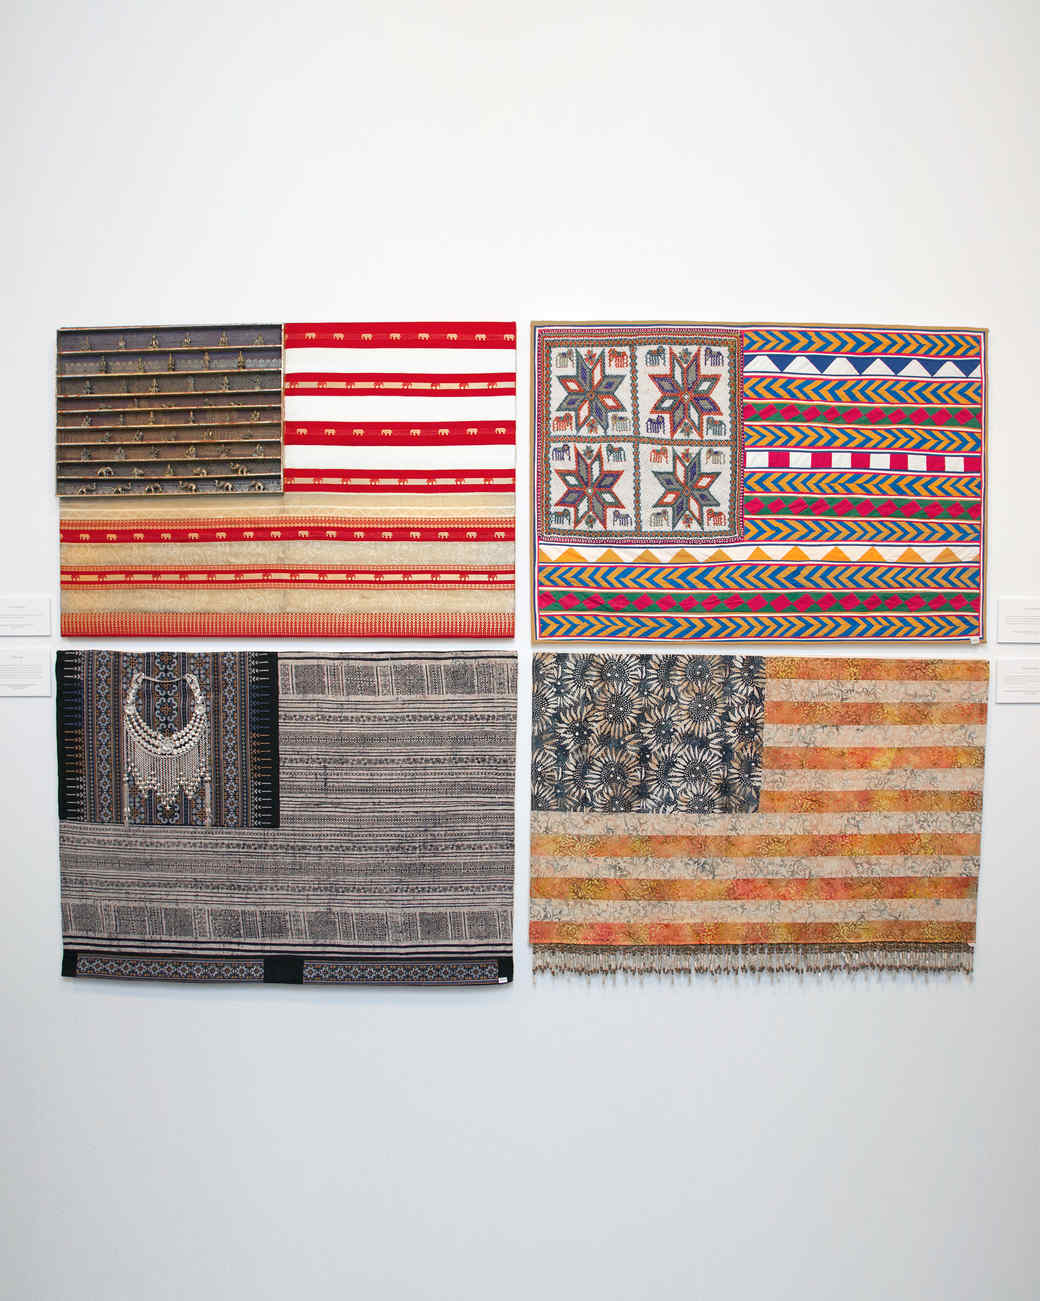 american-made-2015-event-flags-d112698.jpg